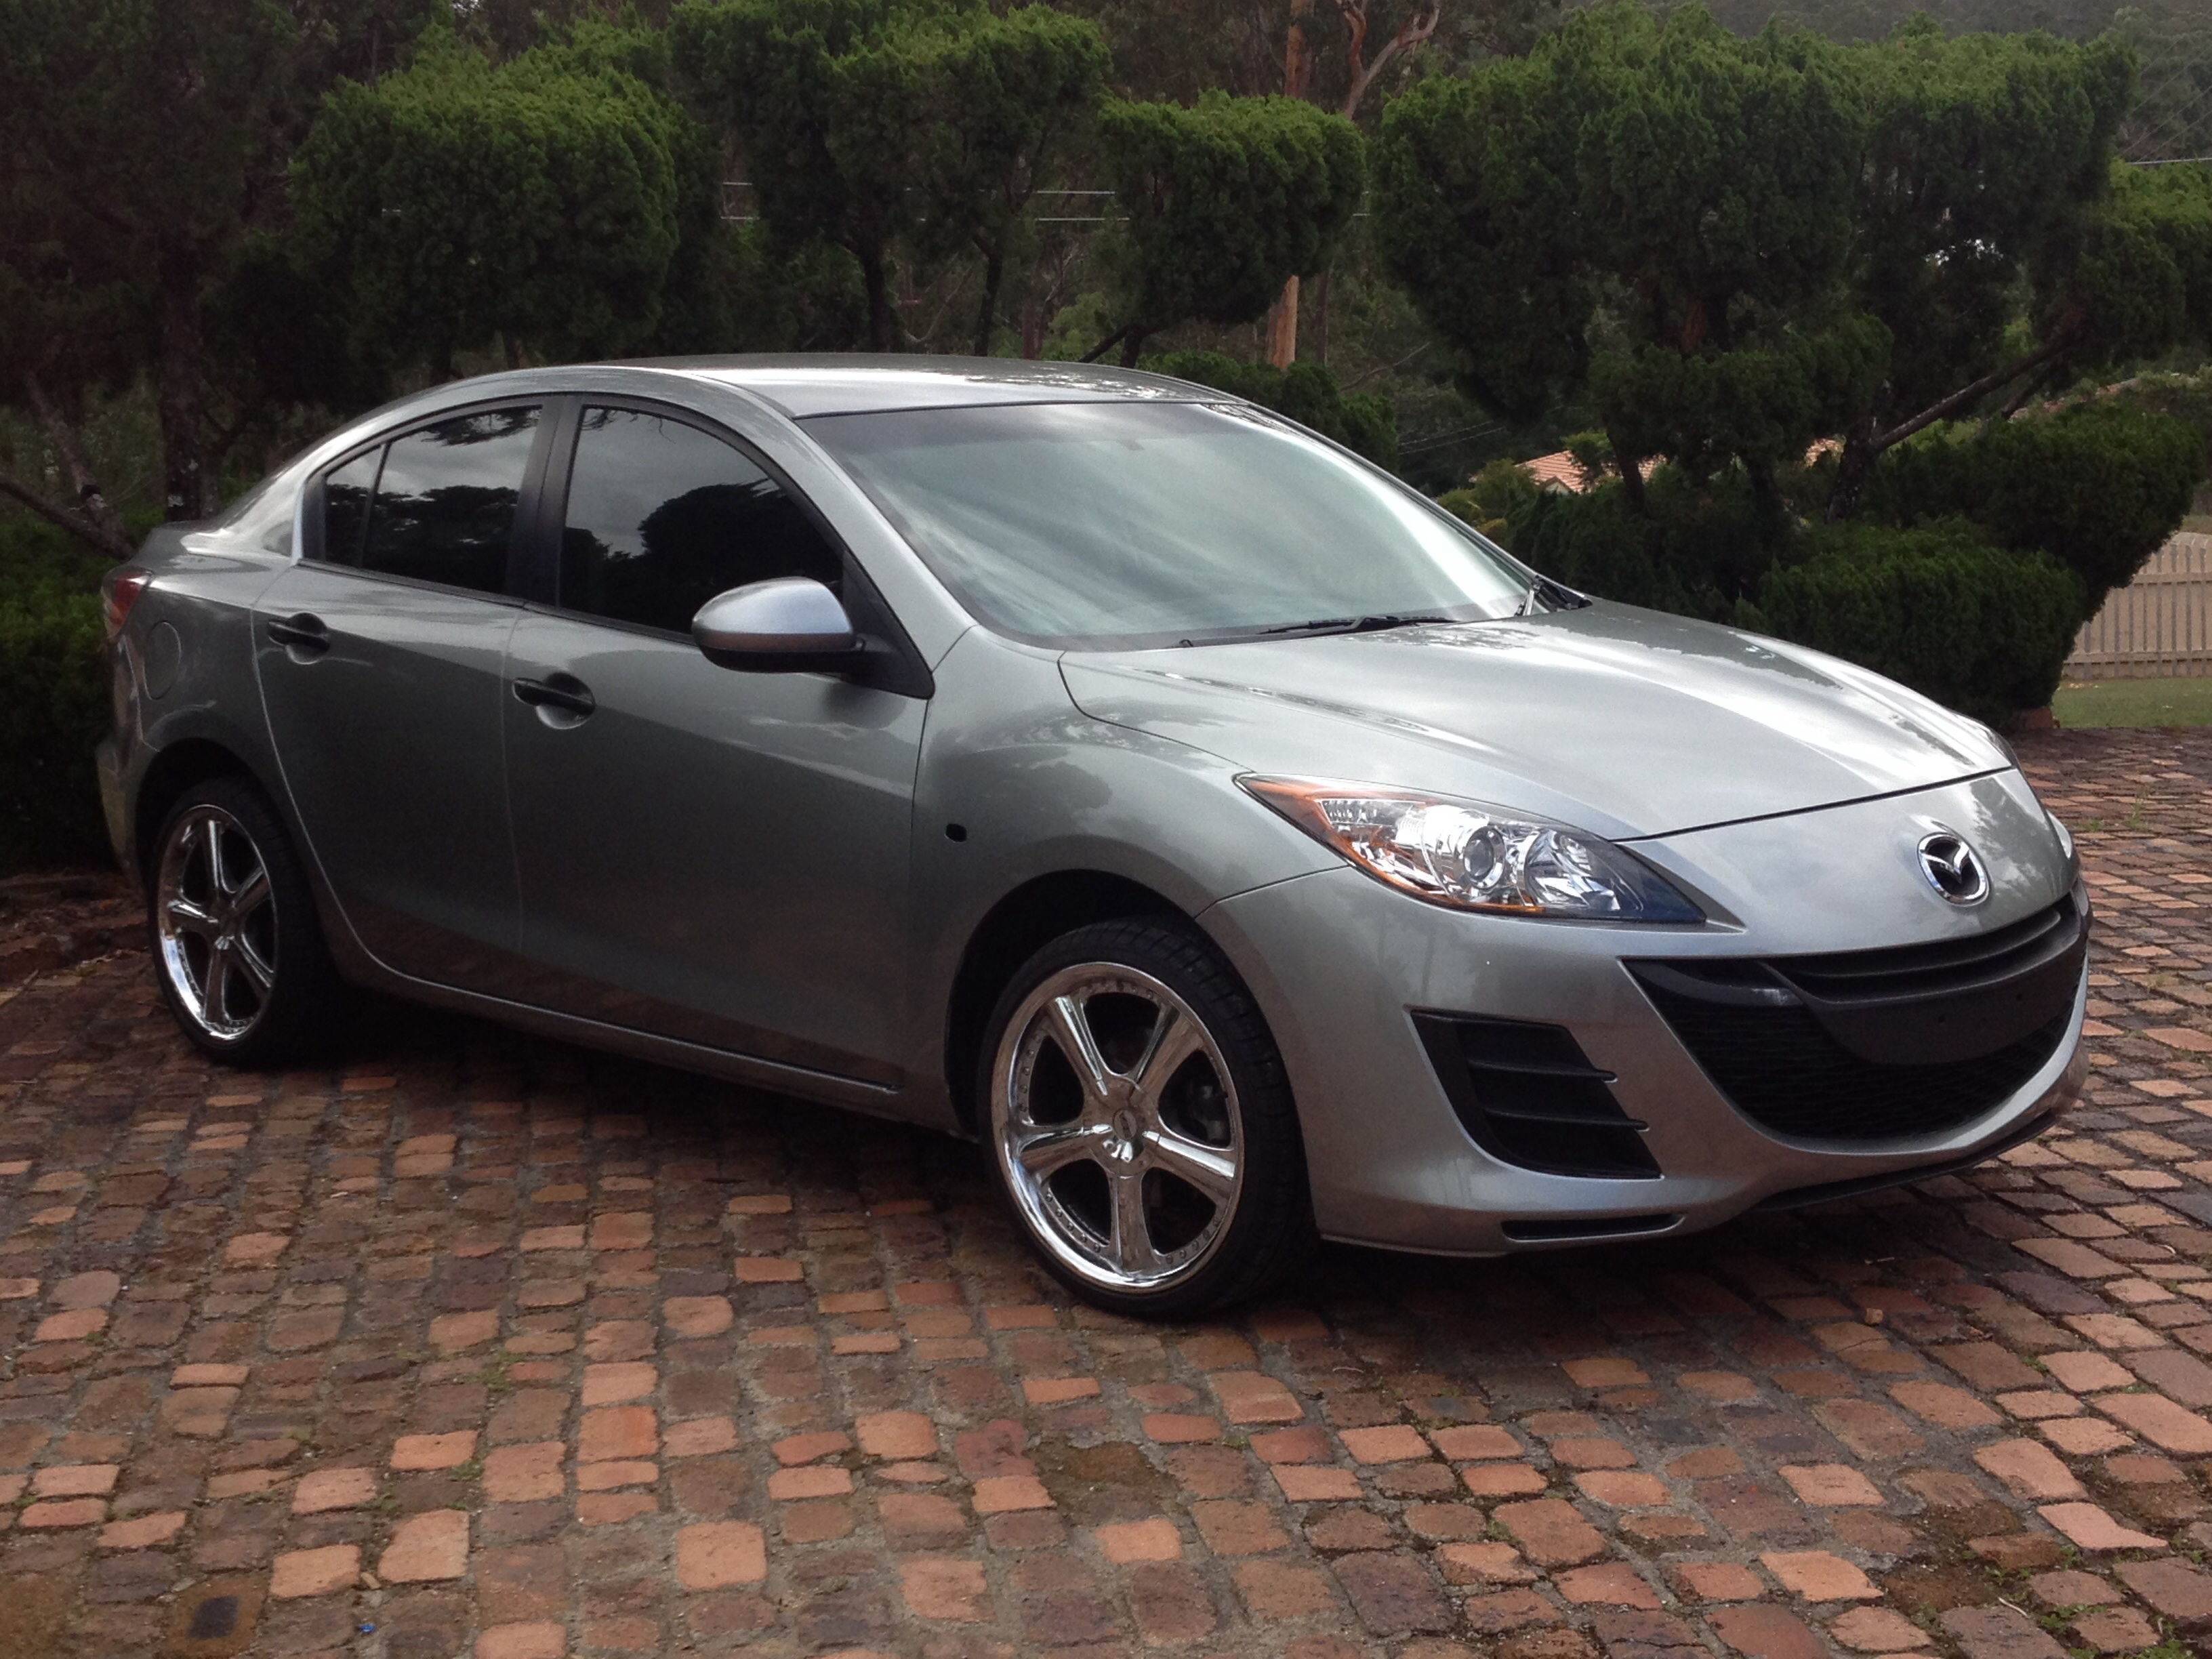 2010 mazda 3 for sale qld brisbane. Black Bedroom Furniture Sets. Home Design Ideas